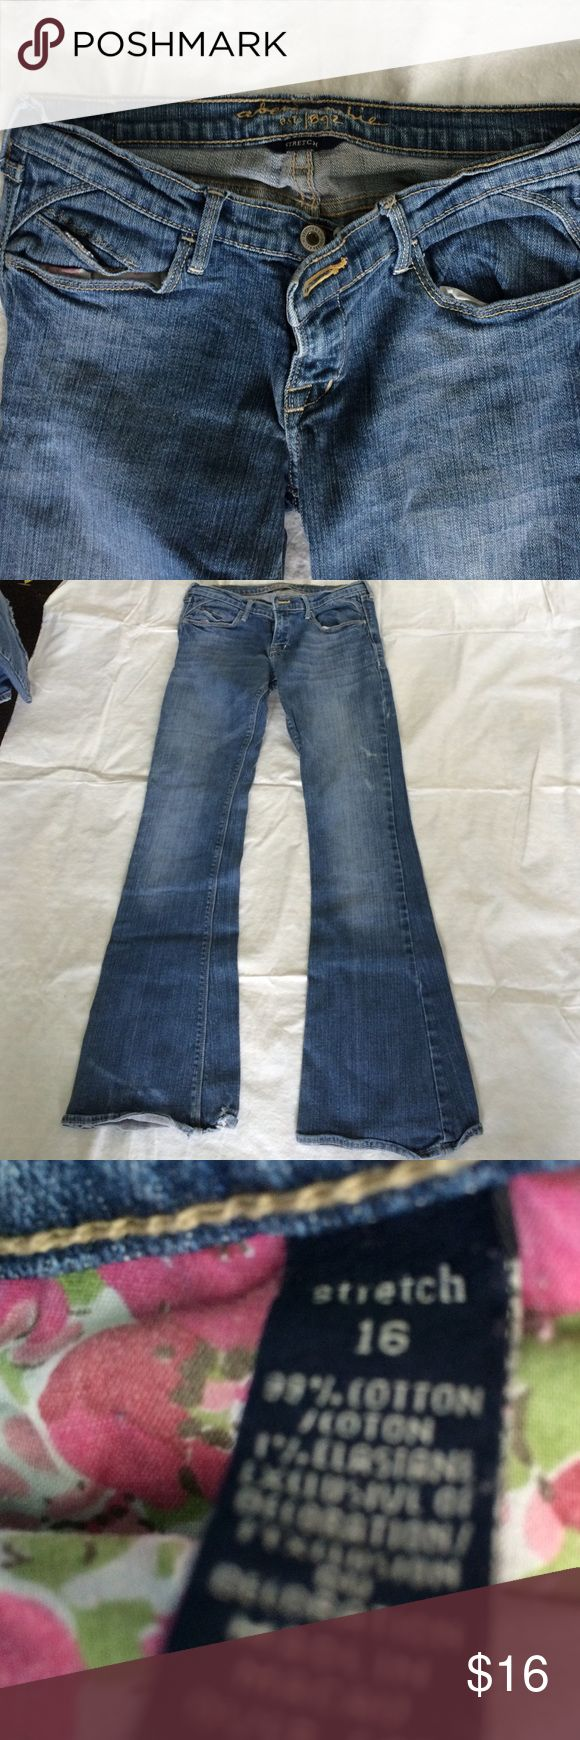 Abercrombie girls stretch size 16 Loved but lots of life Bottoms Jeans